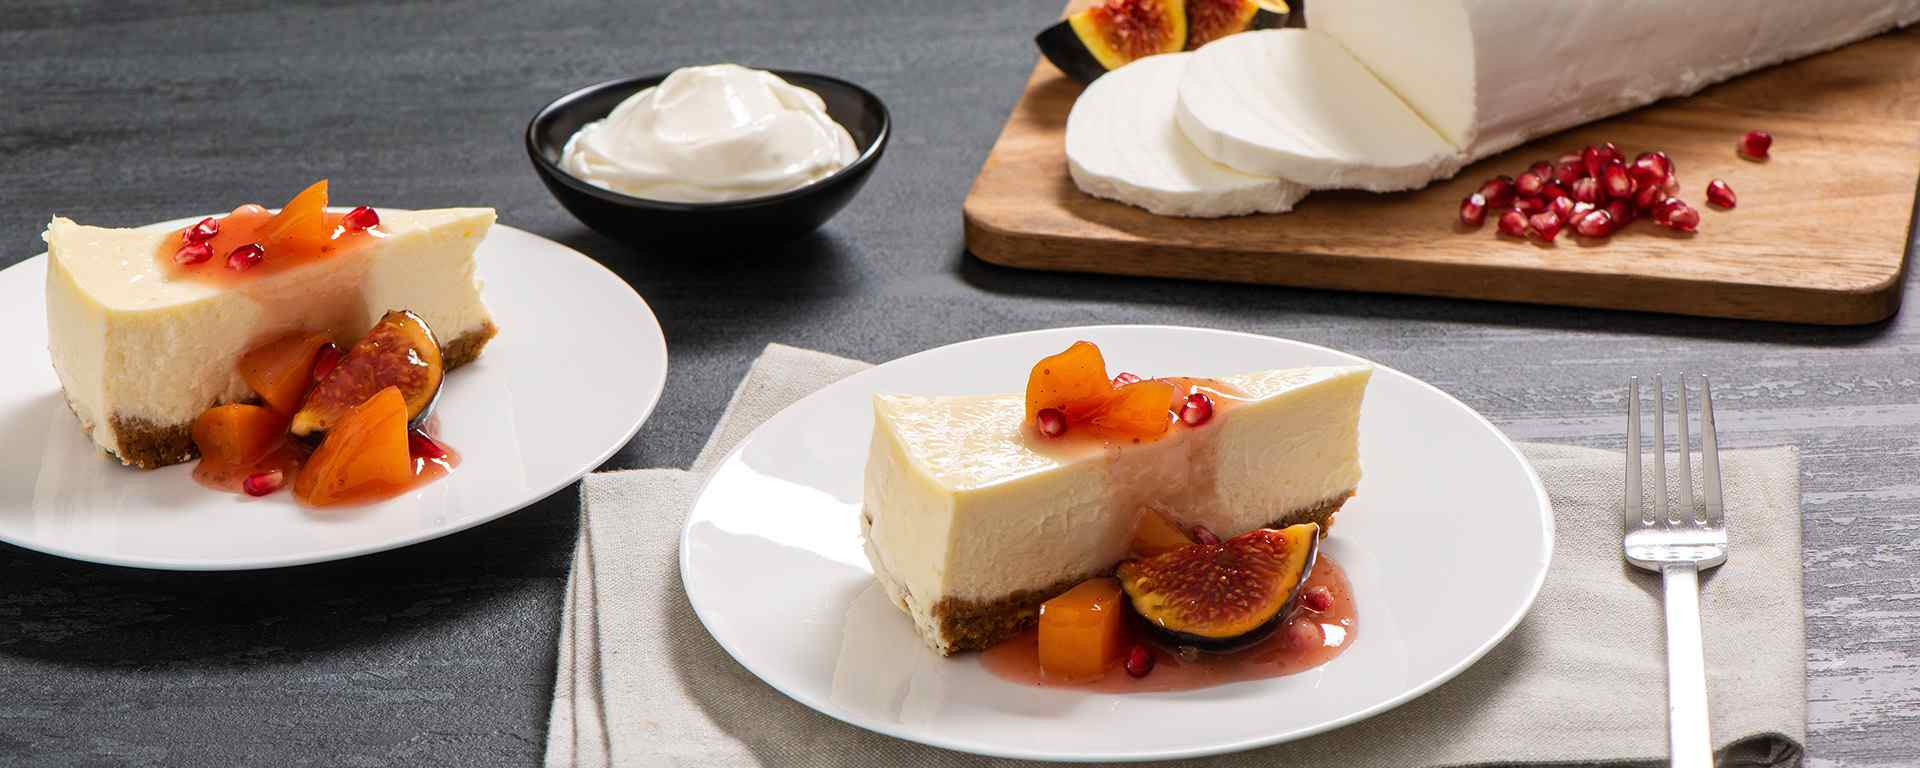 Photo for - Goat Cheese Cheesecake with Pistachio Crust and Poached Fruit